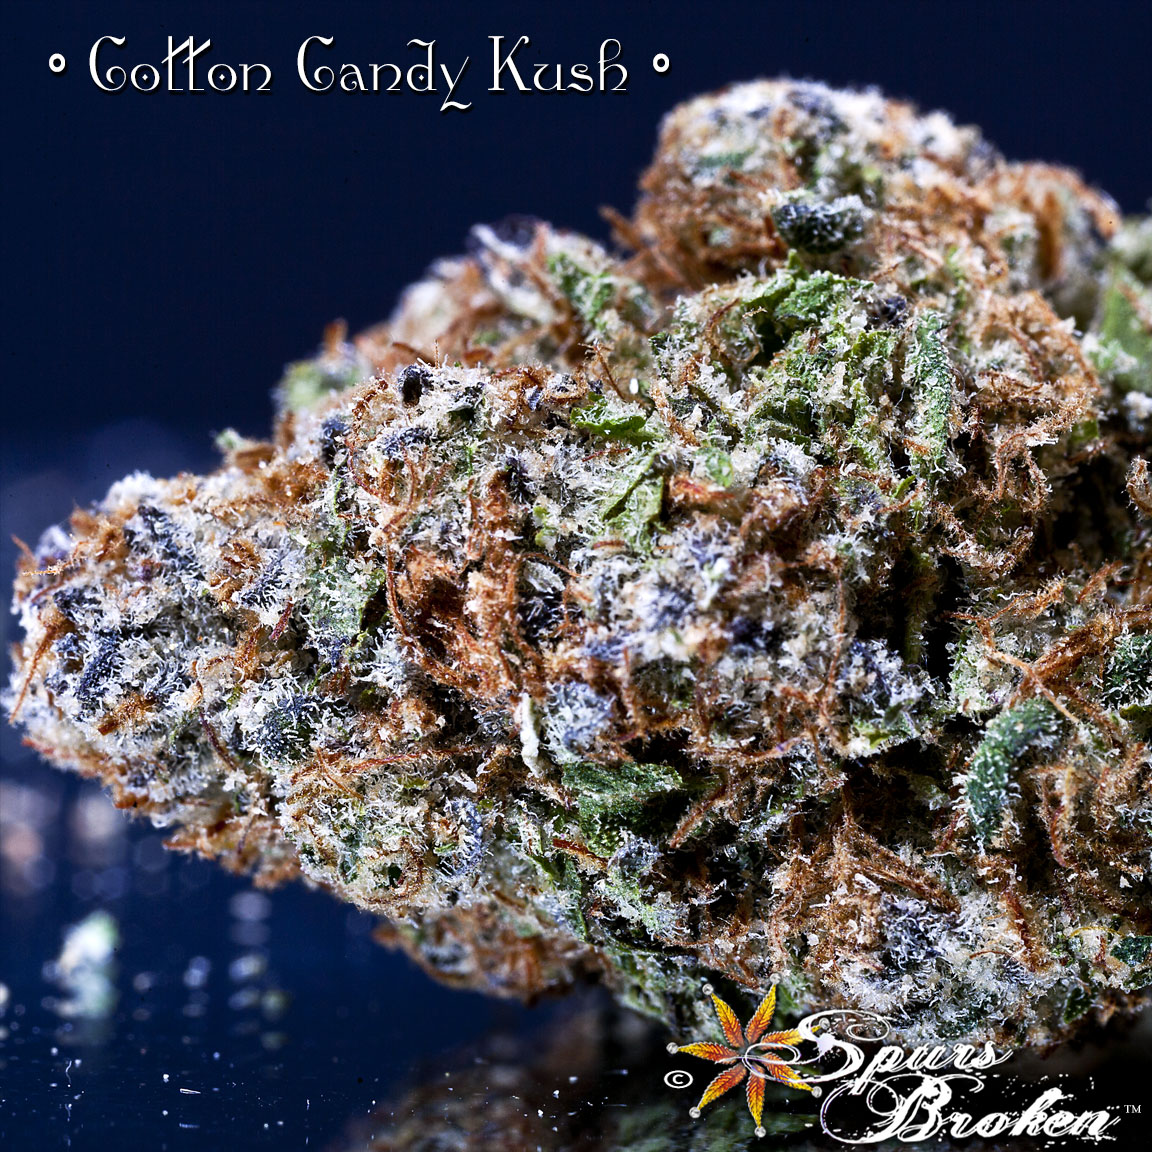 Cotton Candy - Cannabis Macro Photography by Spurs Broken (Robert R. Sanders)